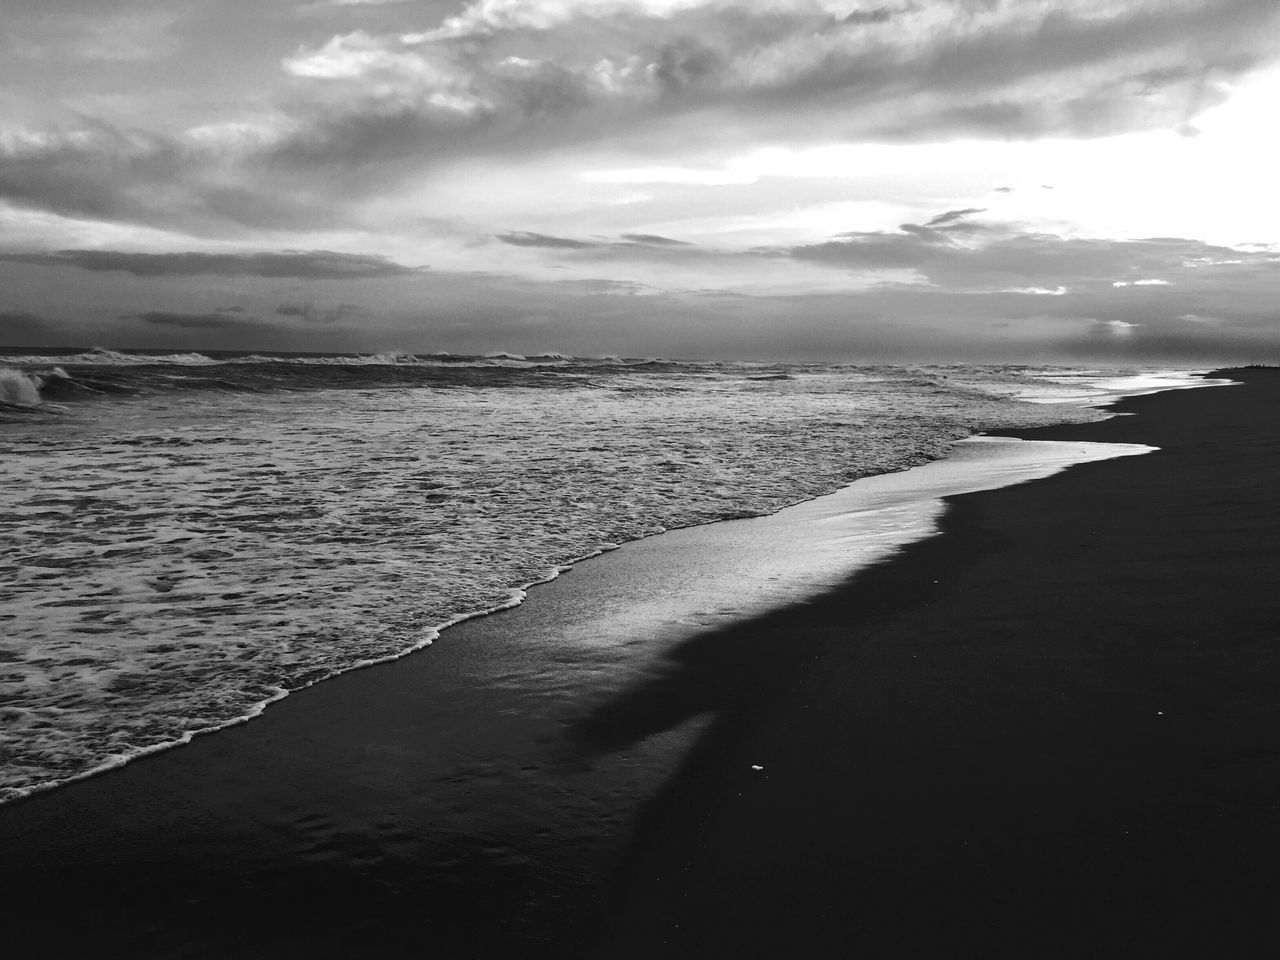 Water Nature Beauty In Nature Sky Tranquil Scene Sea Scenics Cloud - Sky Tranquility Outdoors Beach No People Day Mountain EyeEm Nature Lover EyeEm Gallery Blackandwhite EyeEm Bnw On The Beach